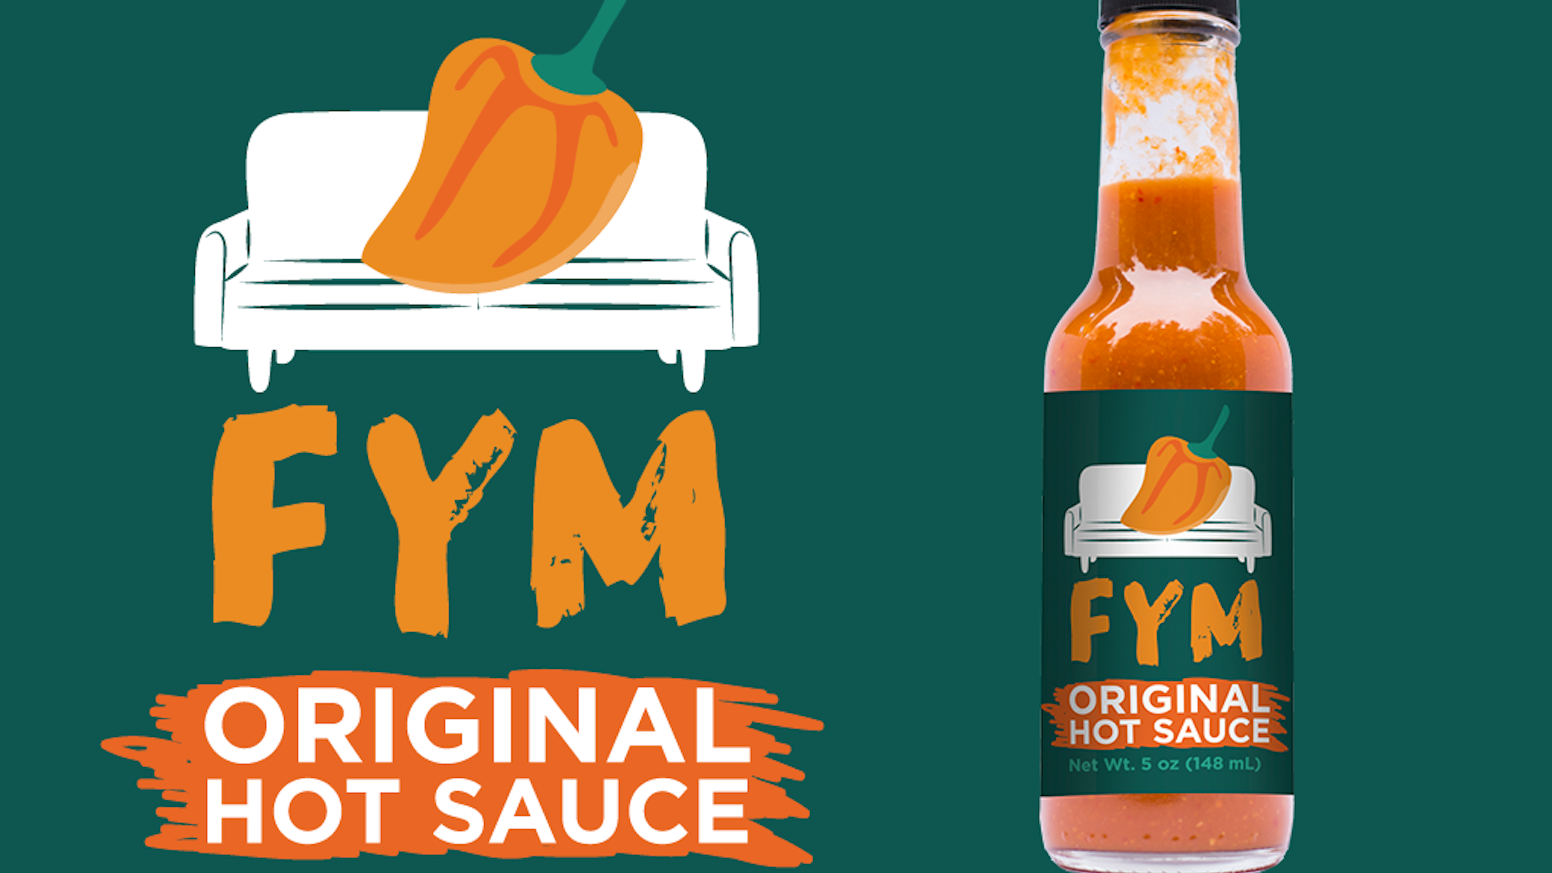 FYM is a very spicy and flavorful premium habanero hot sauce made with fresh ingredients.  It goes great with everything!